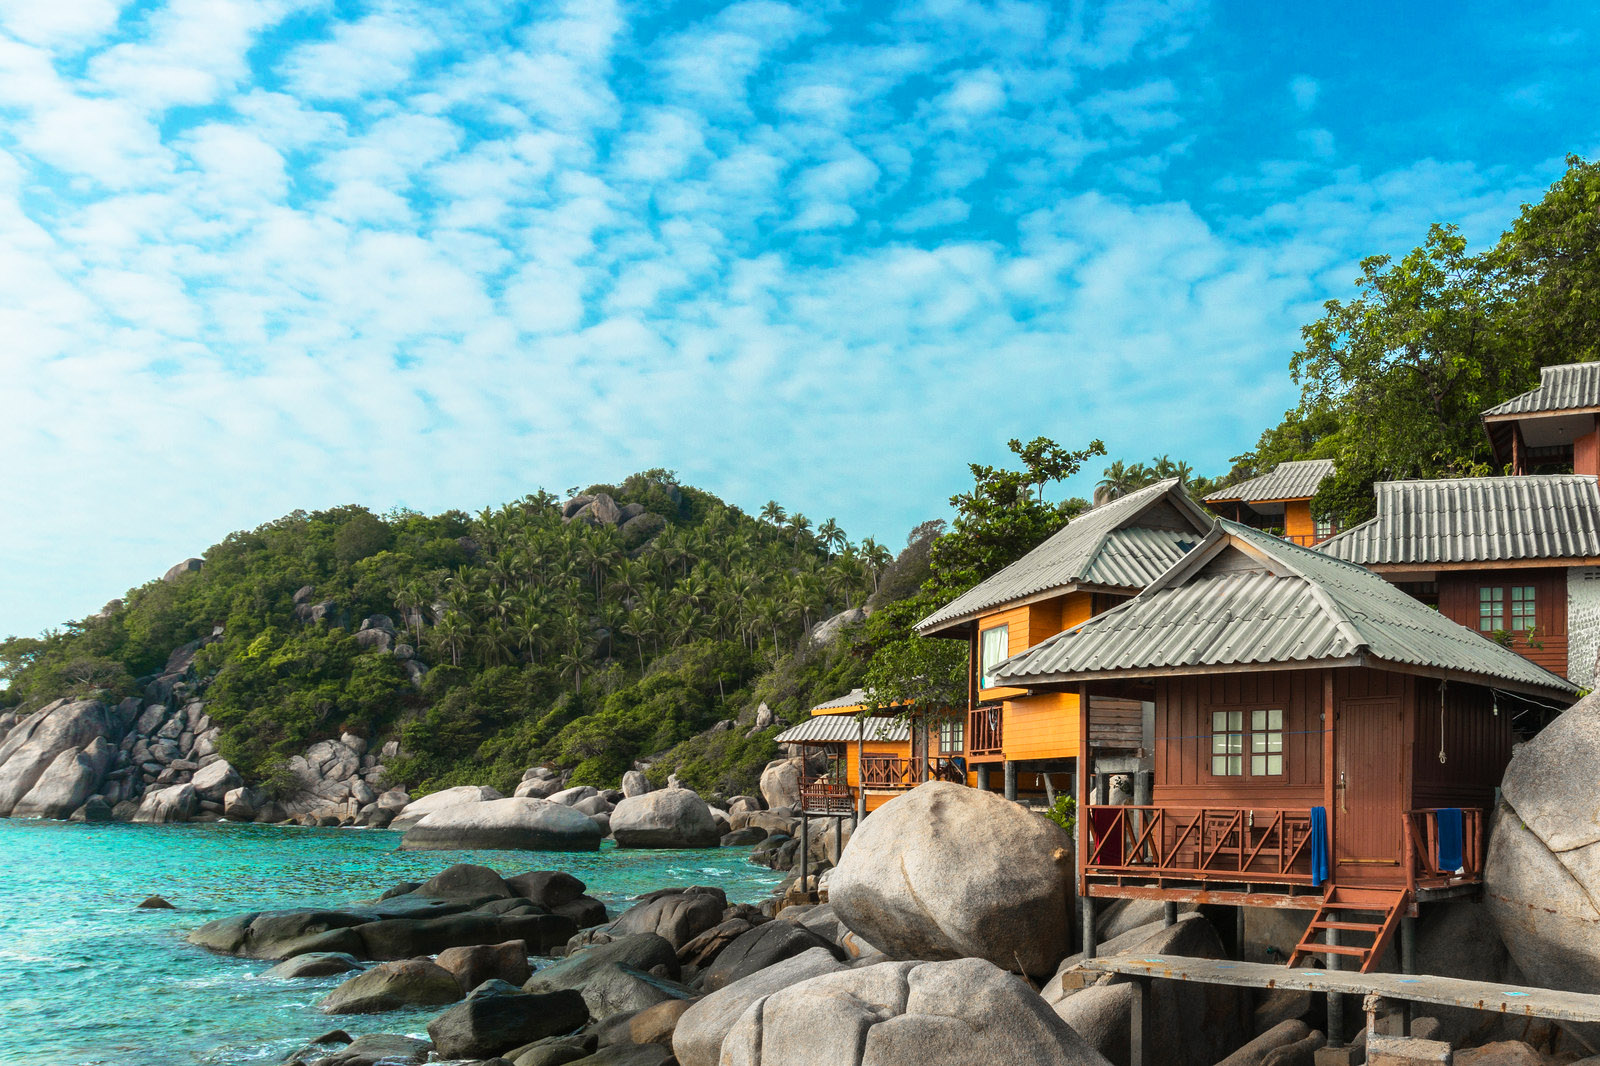 Koh Tao | 10 Best Snorkeling and Diving Spots